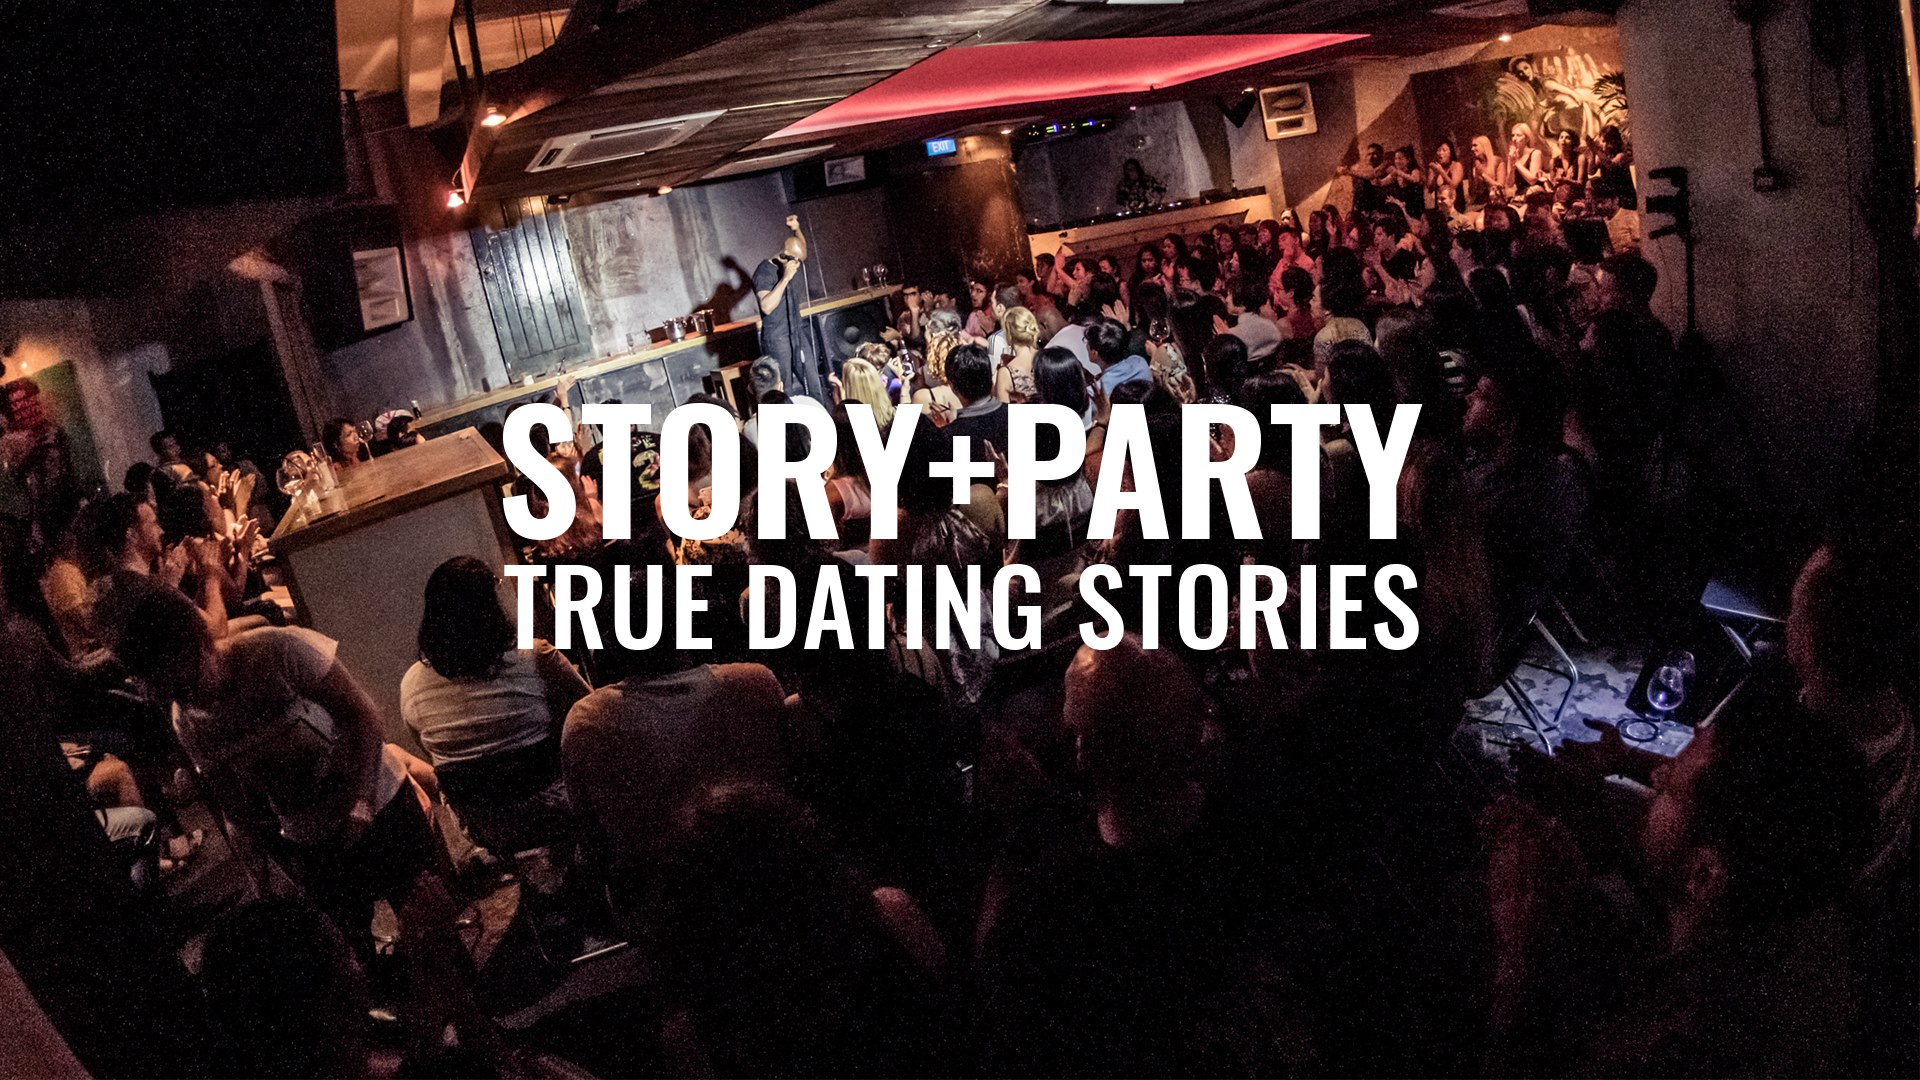 Story Party Turku | True Dating Stories klo 20:30